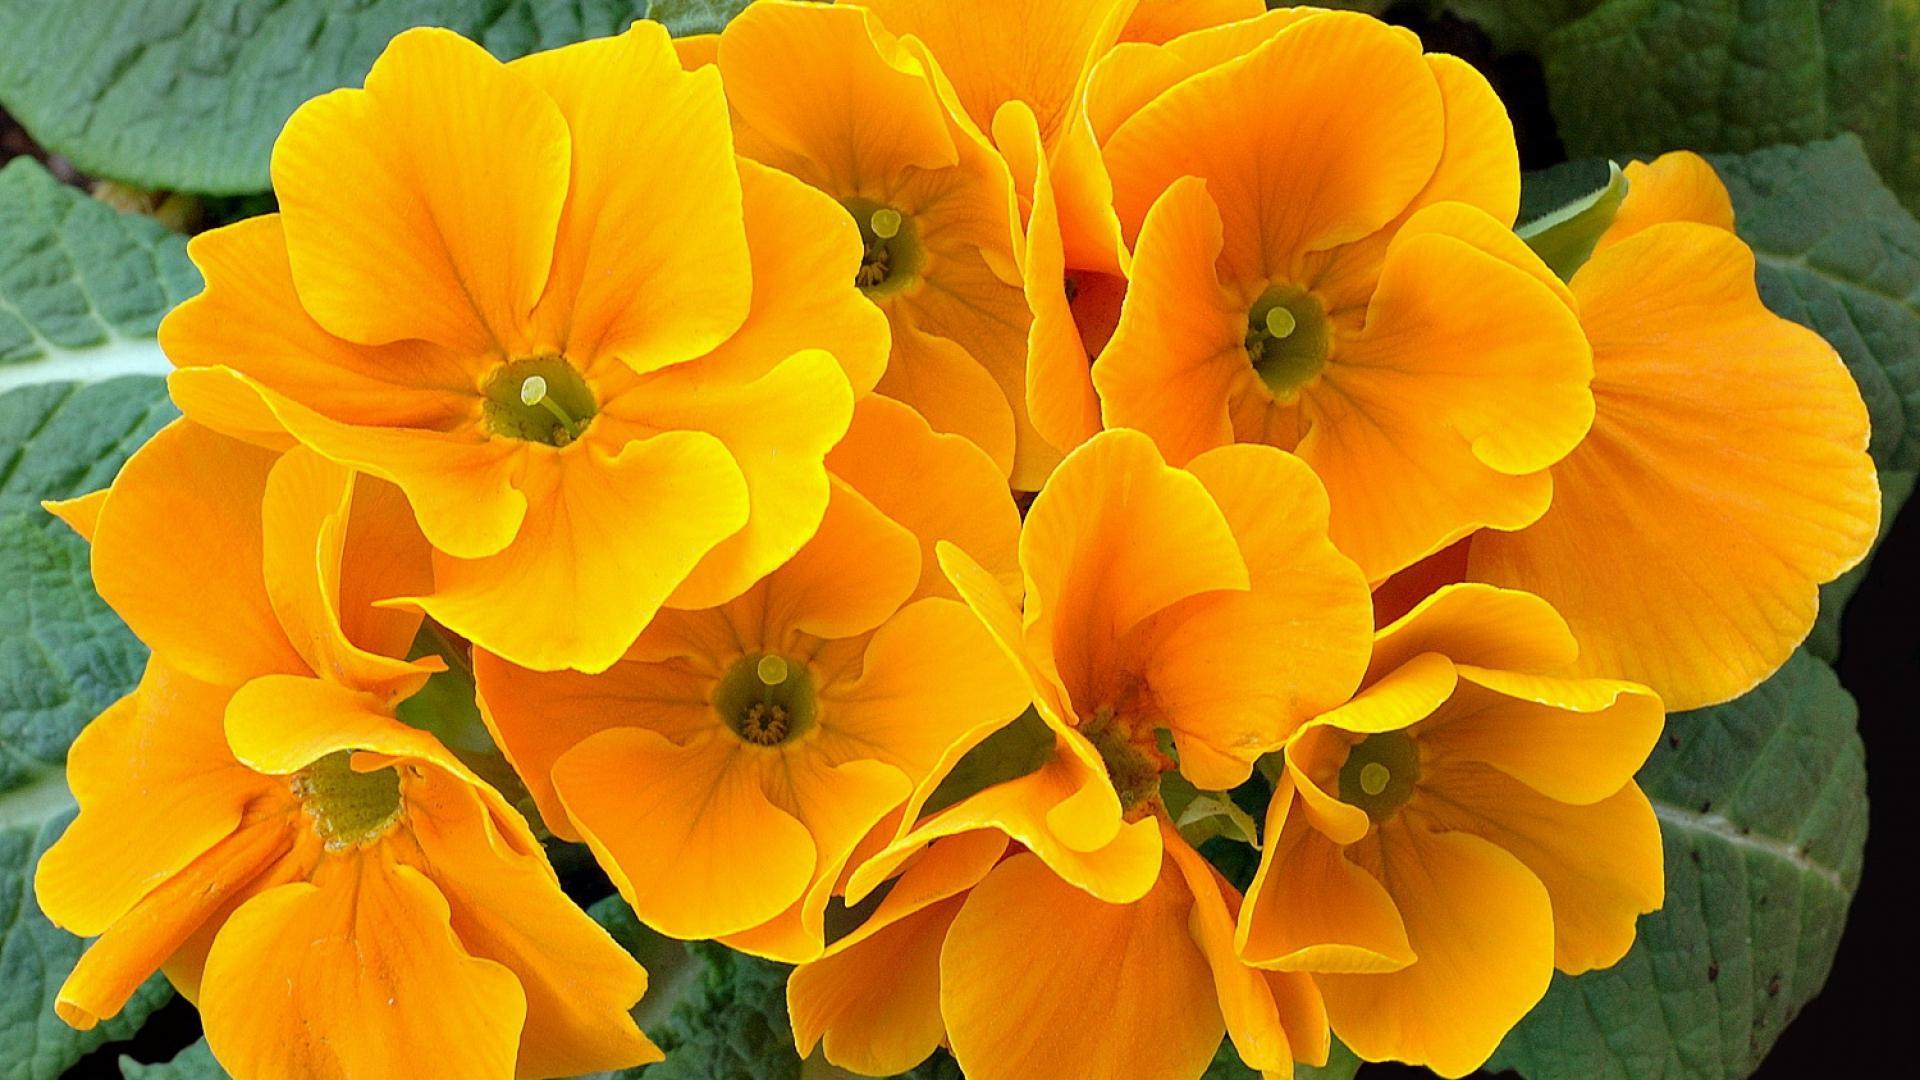 Primrose Flowers Wallpapers